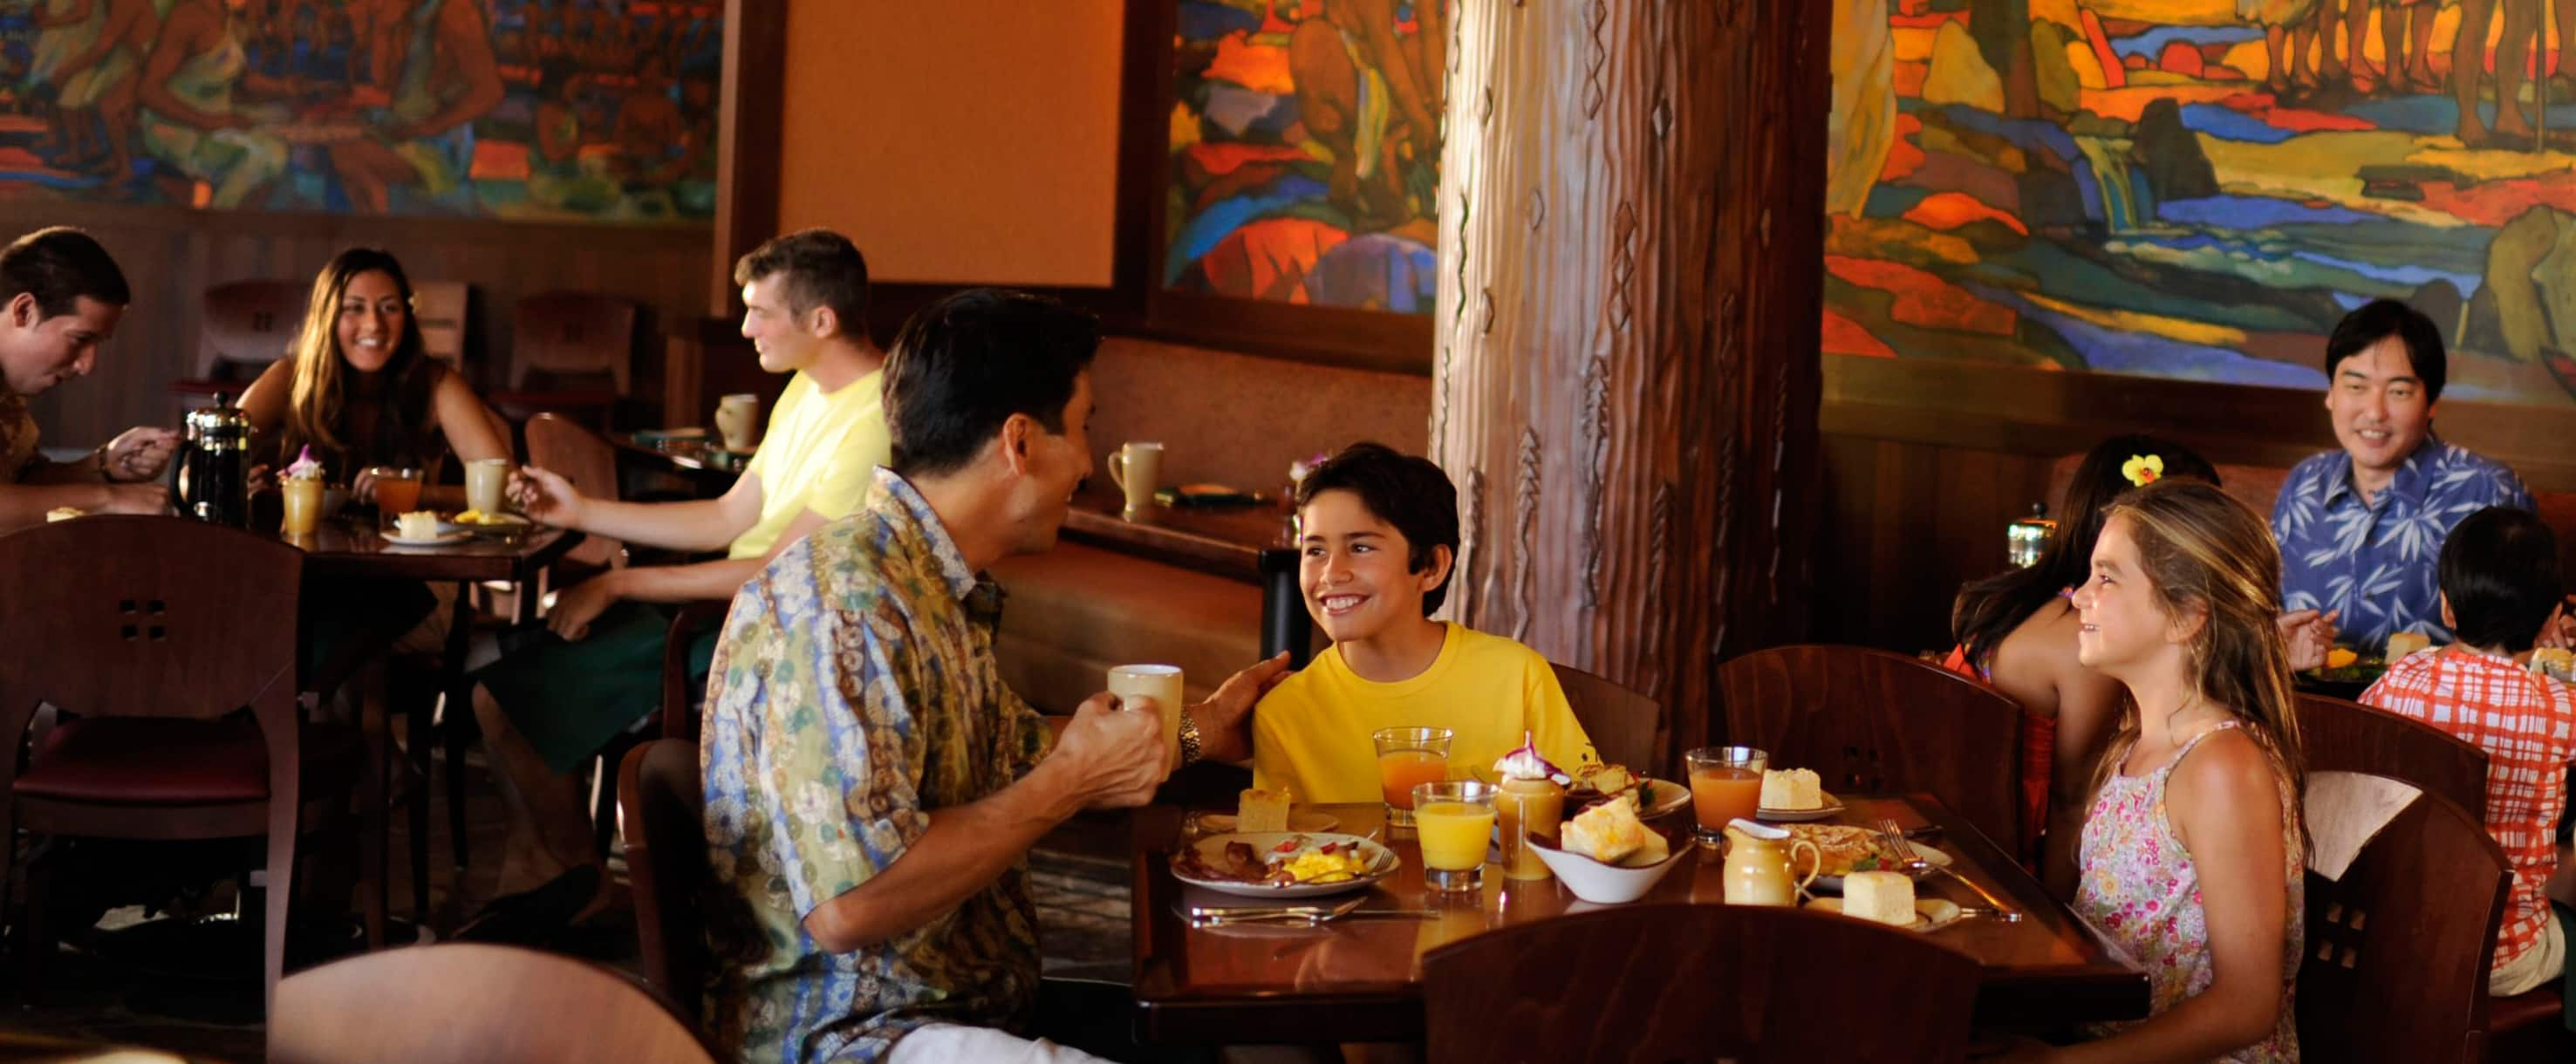 A Father And Son In An Animated Conversation At Breakfast While Young Daughter Looks On